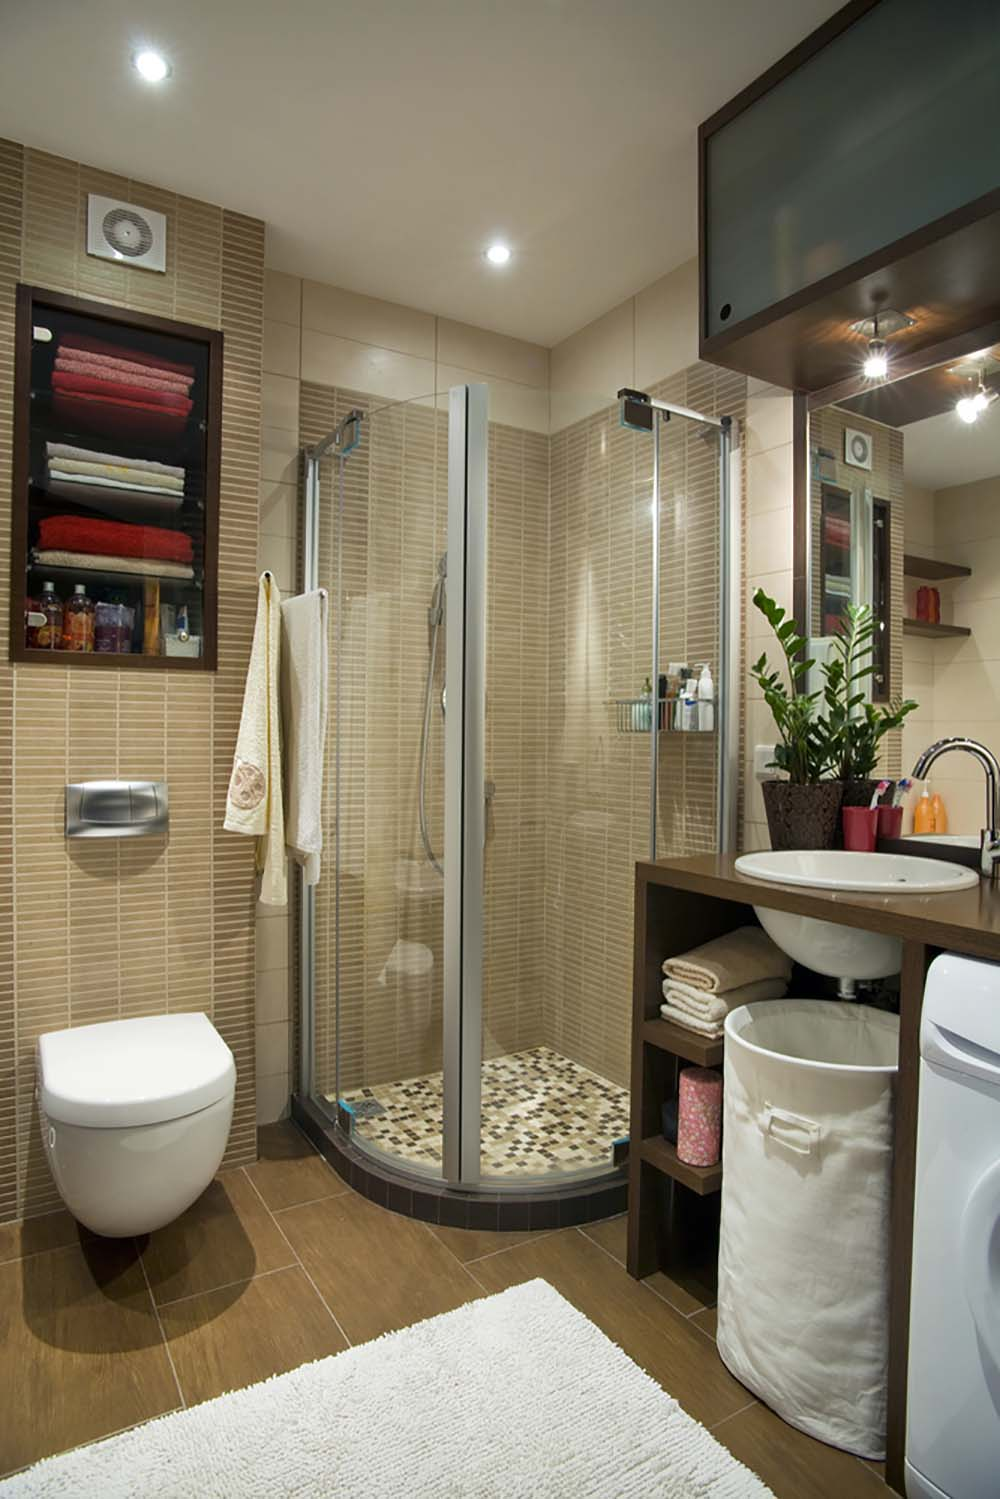 51 Beautiful and Functional Small Bathrooms on Small Space:t5Ts6Ke0384= Small Bathroom Ideas  id=55773